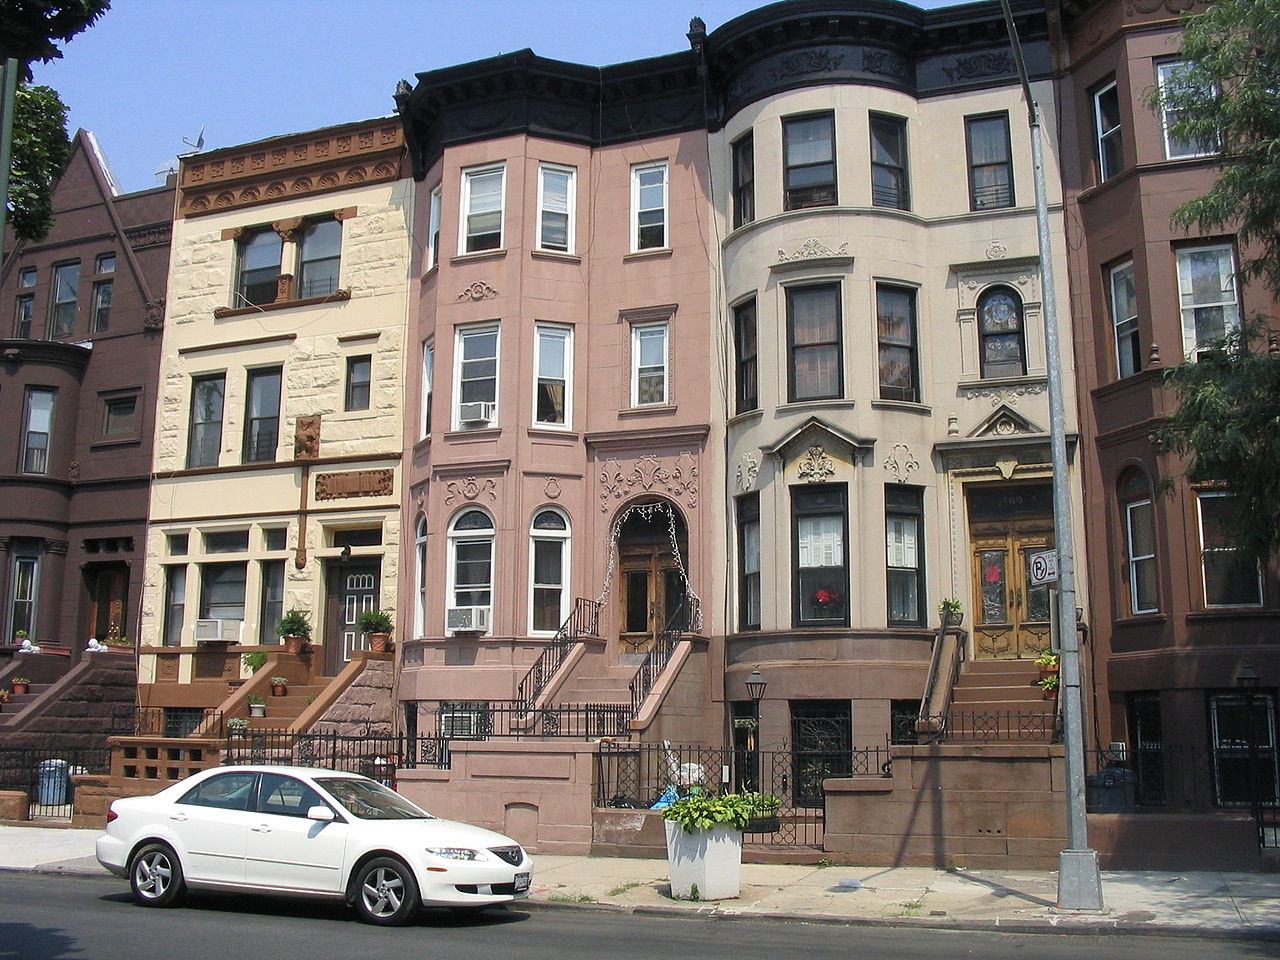 https://upload.wikimedia.org/wikipedia/commons/thumb/3/34/Bedstuybrownstone1.jpg/1280px-Bedstuybrownstone1.jpg